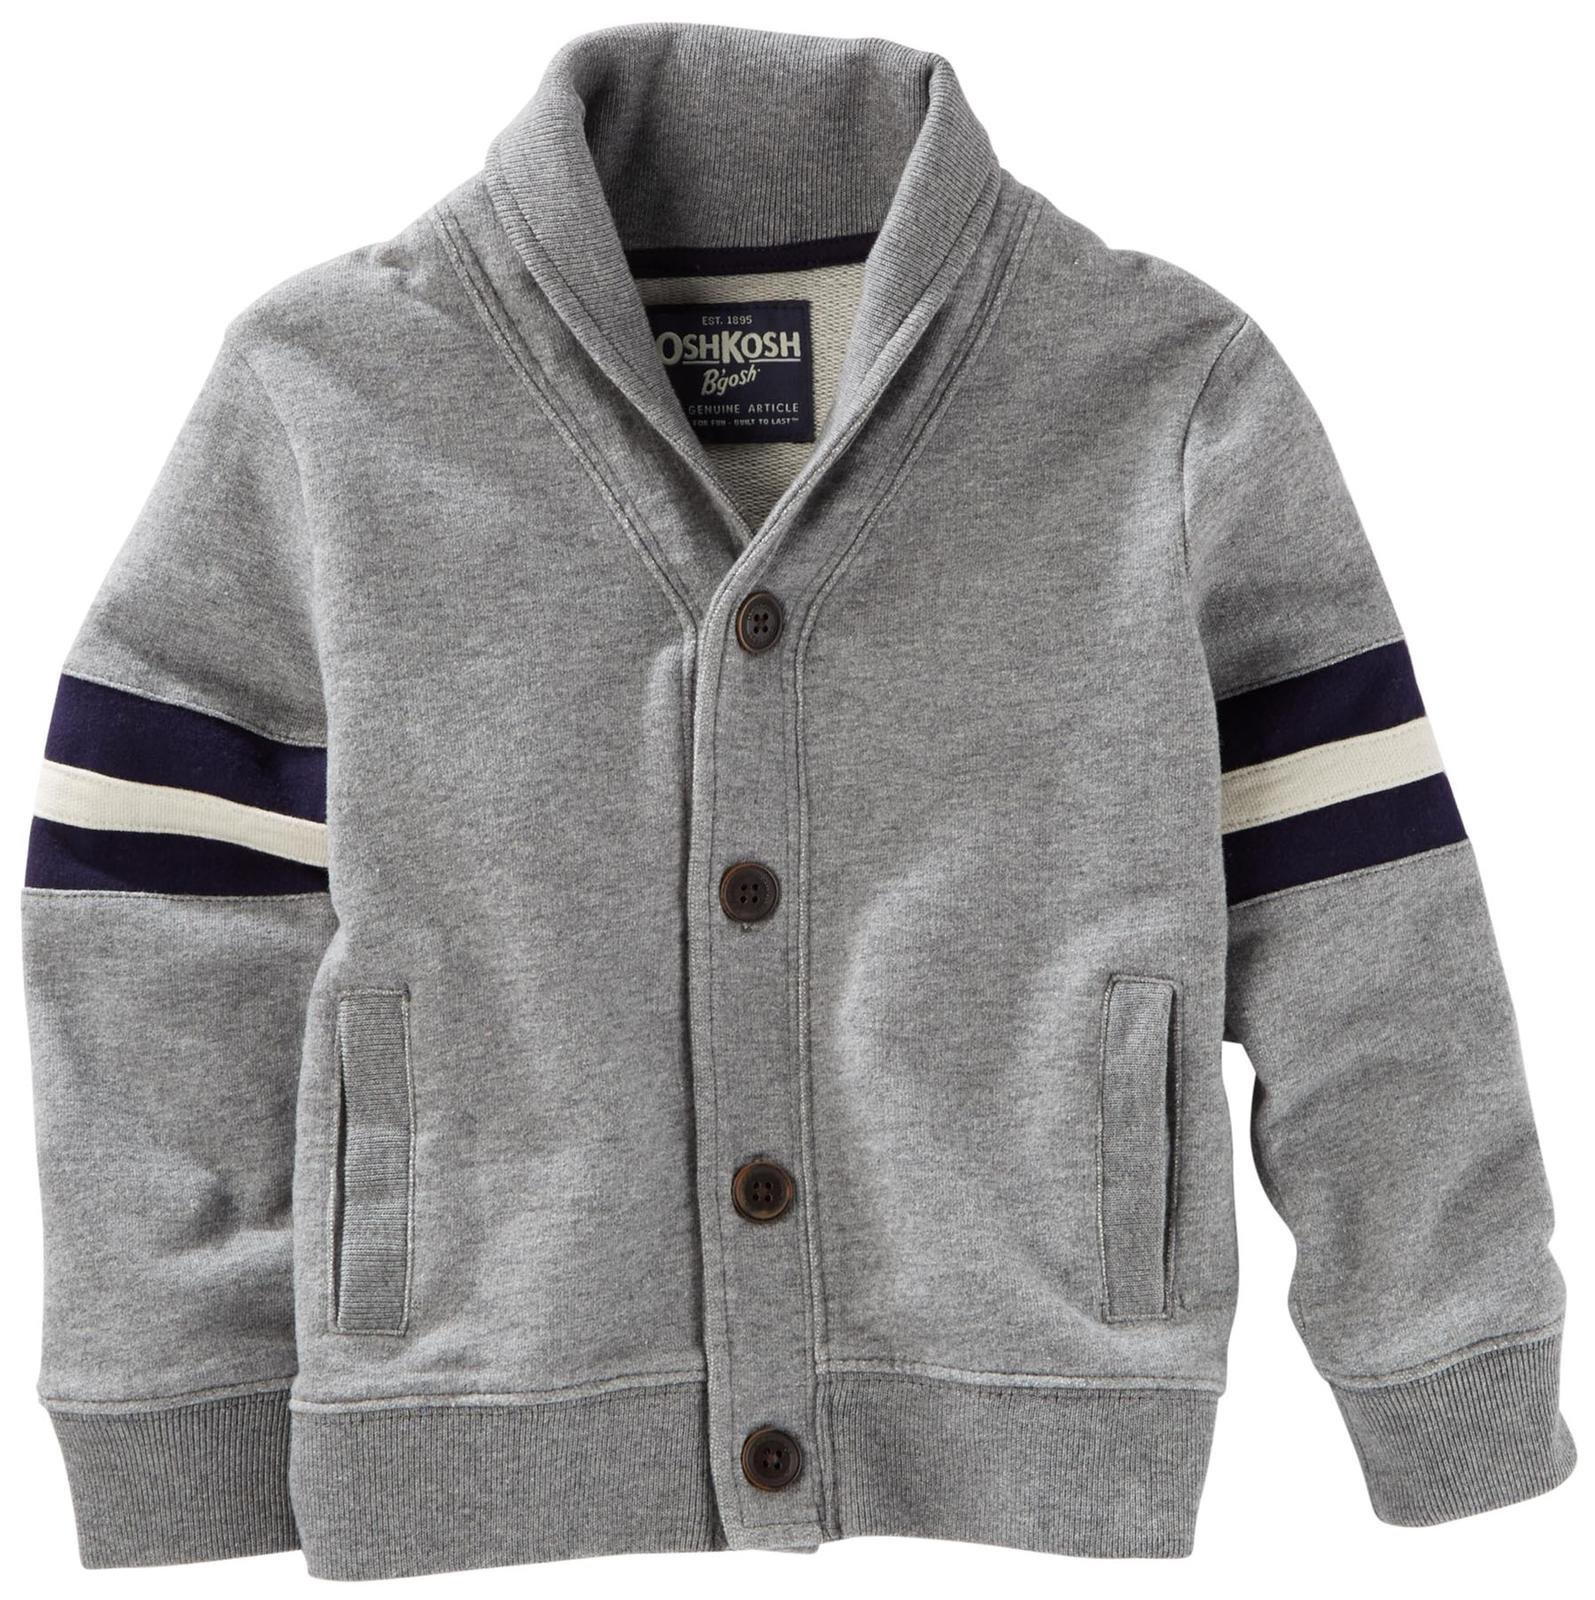 OshKosh B'Gosh Boys' Knit Layering 22153910, Heather (053) 4T